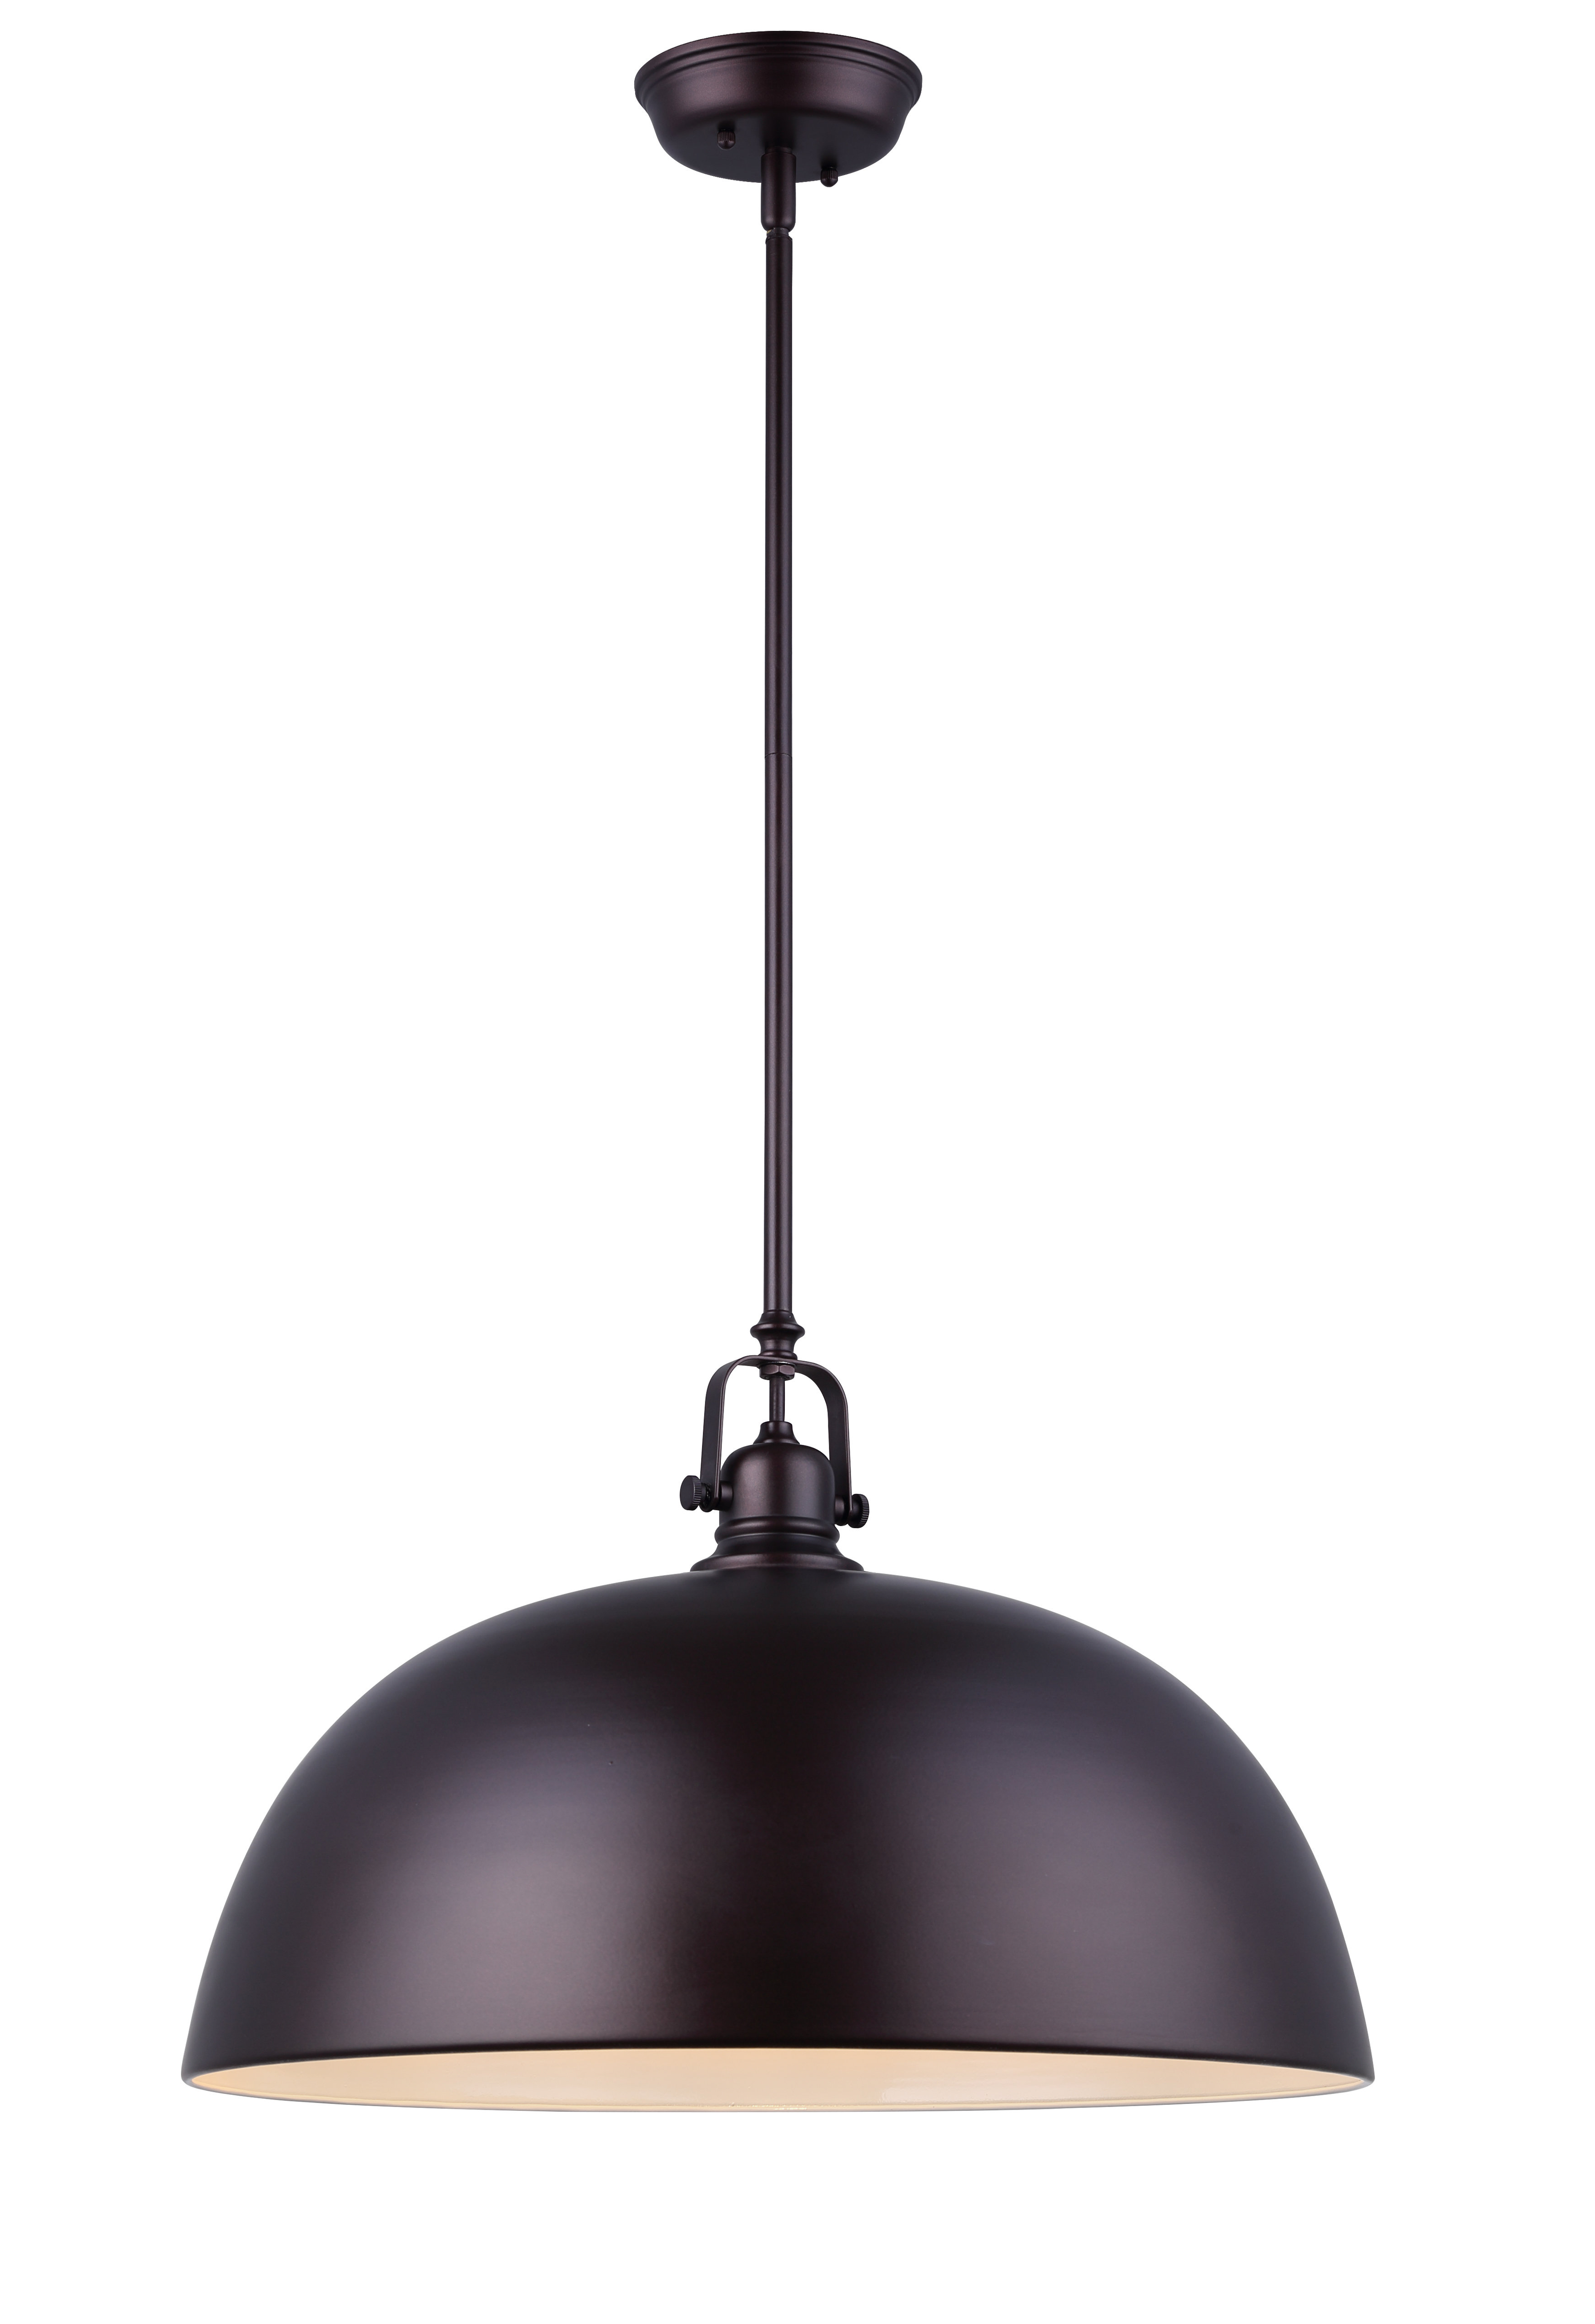 Conover 1 Light Dome Pendants Intended For Fashionable Southlake 1 Light Single Dome Pendant (View 5 of 25)